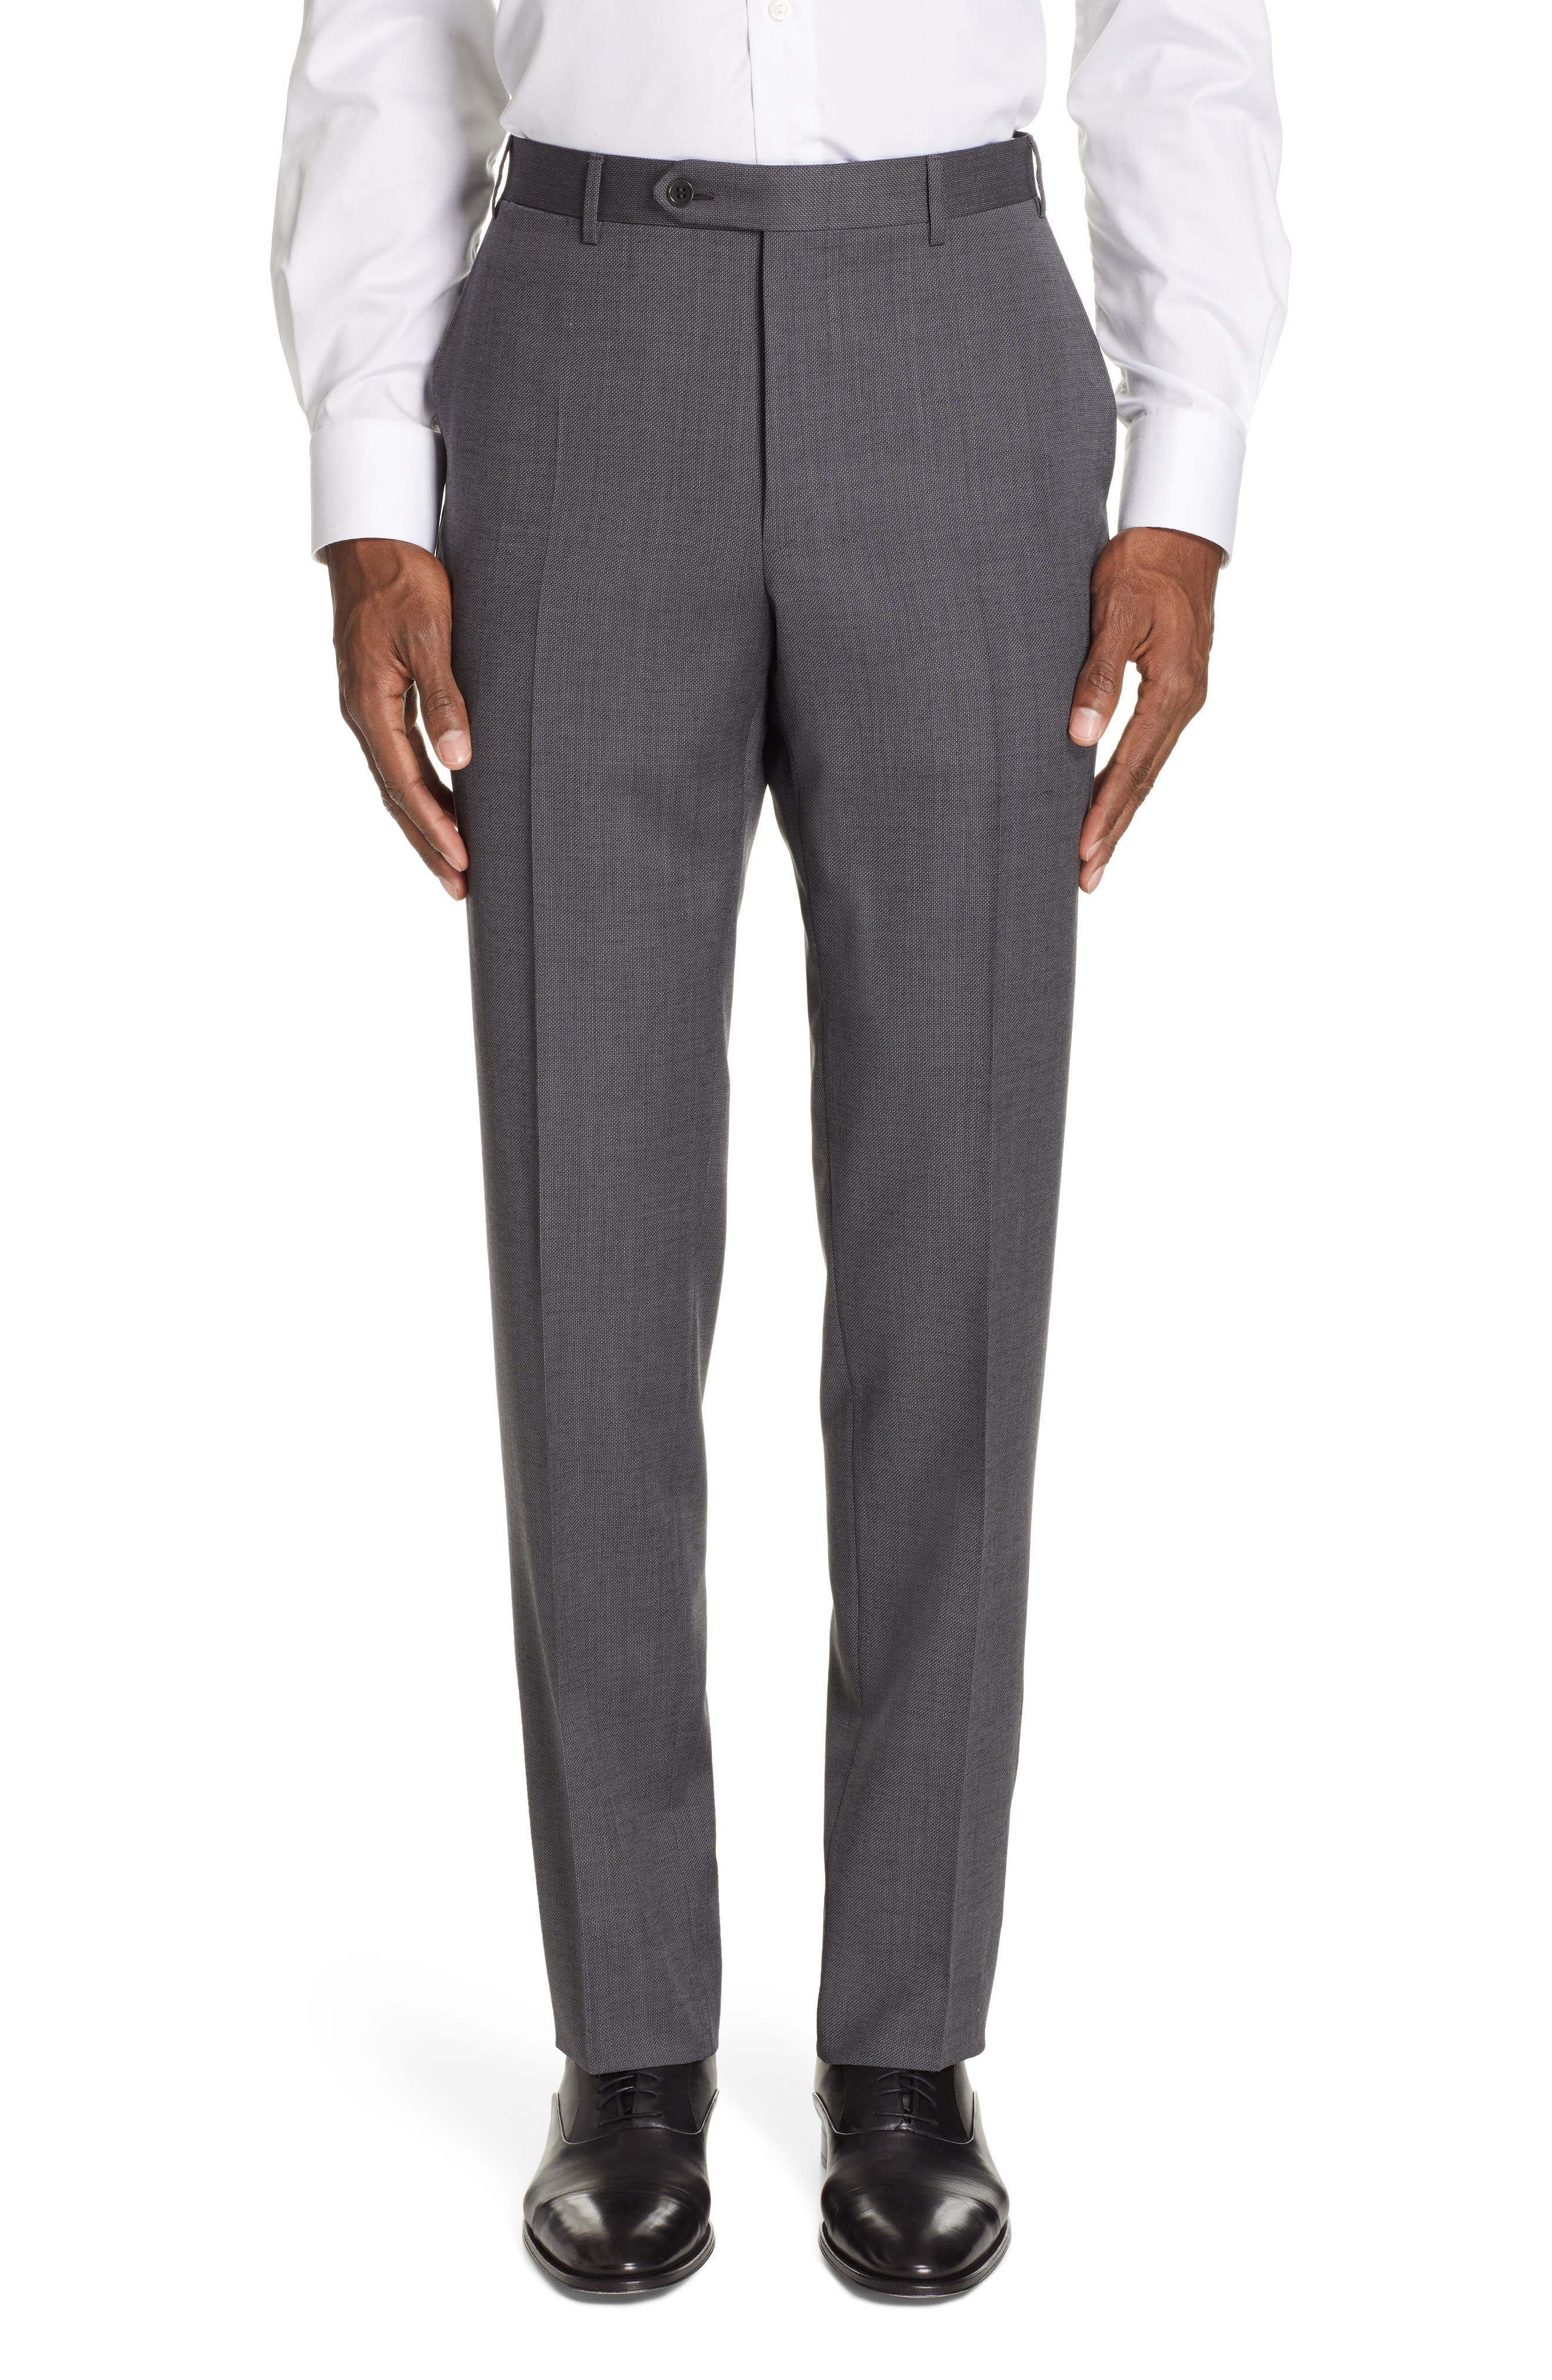 CANALI, Flat Front Solid Wool Trousers, Main thumbnail 1, color, CHARCOAL